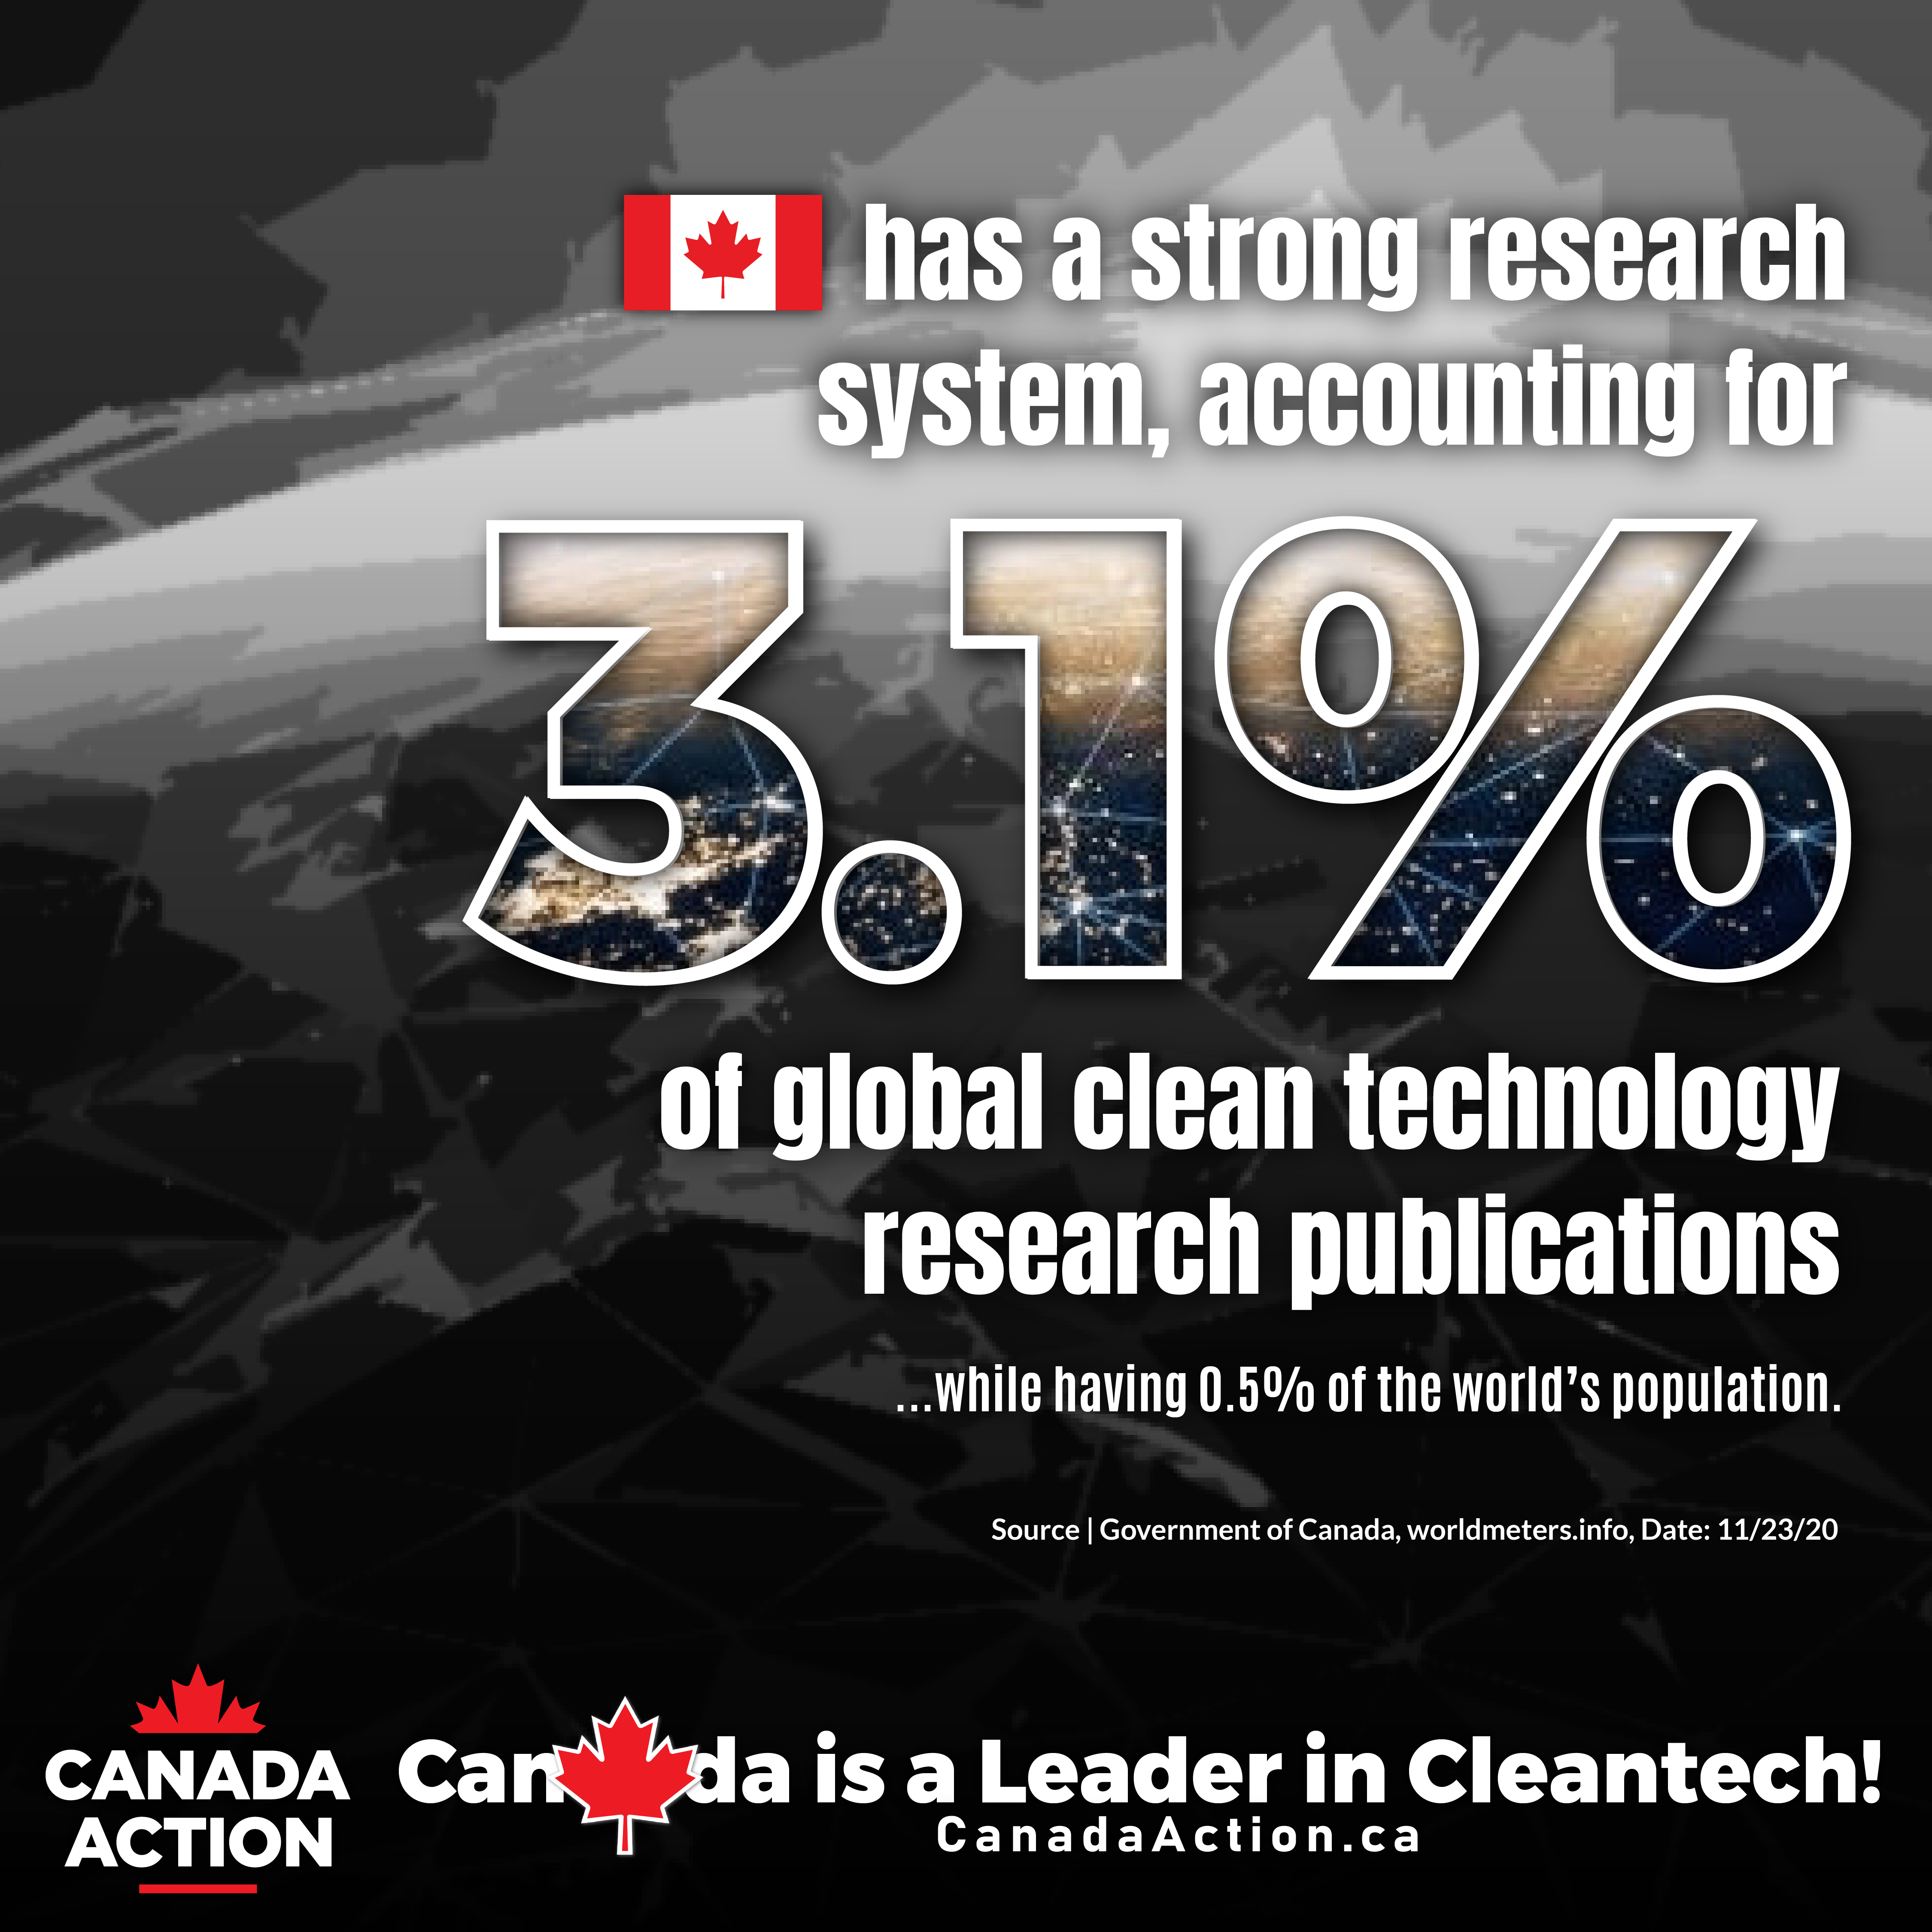 Canada is a world leader on cleantech research and publications